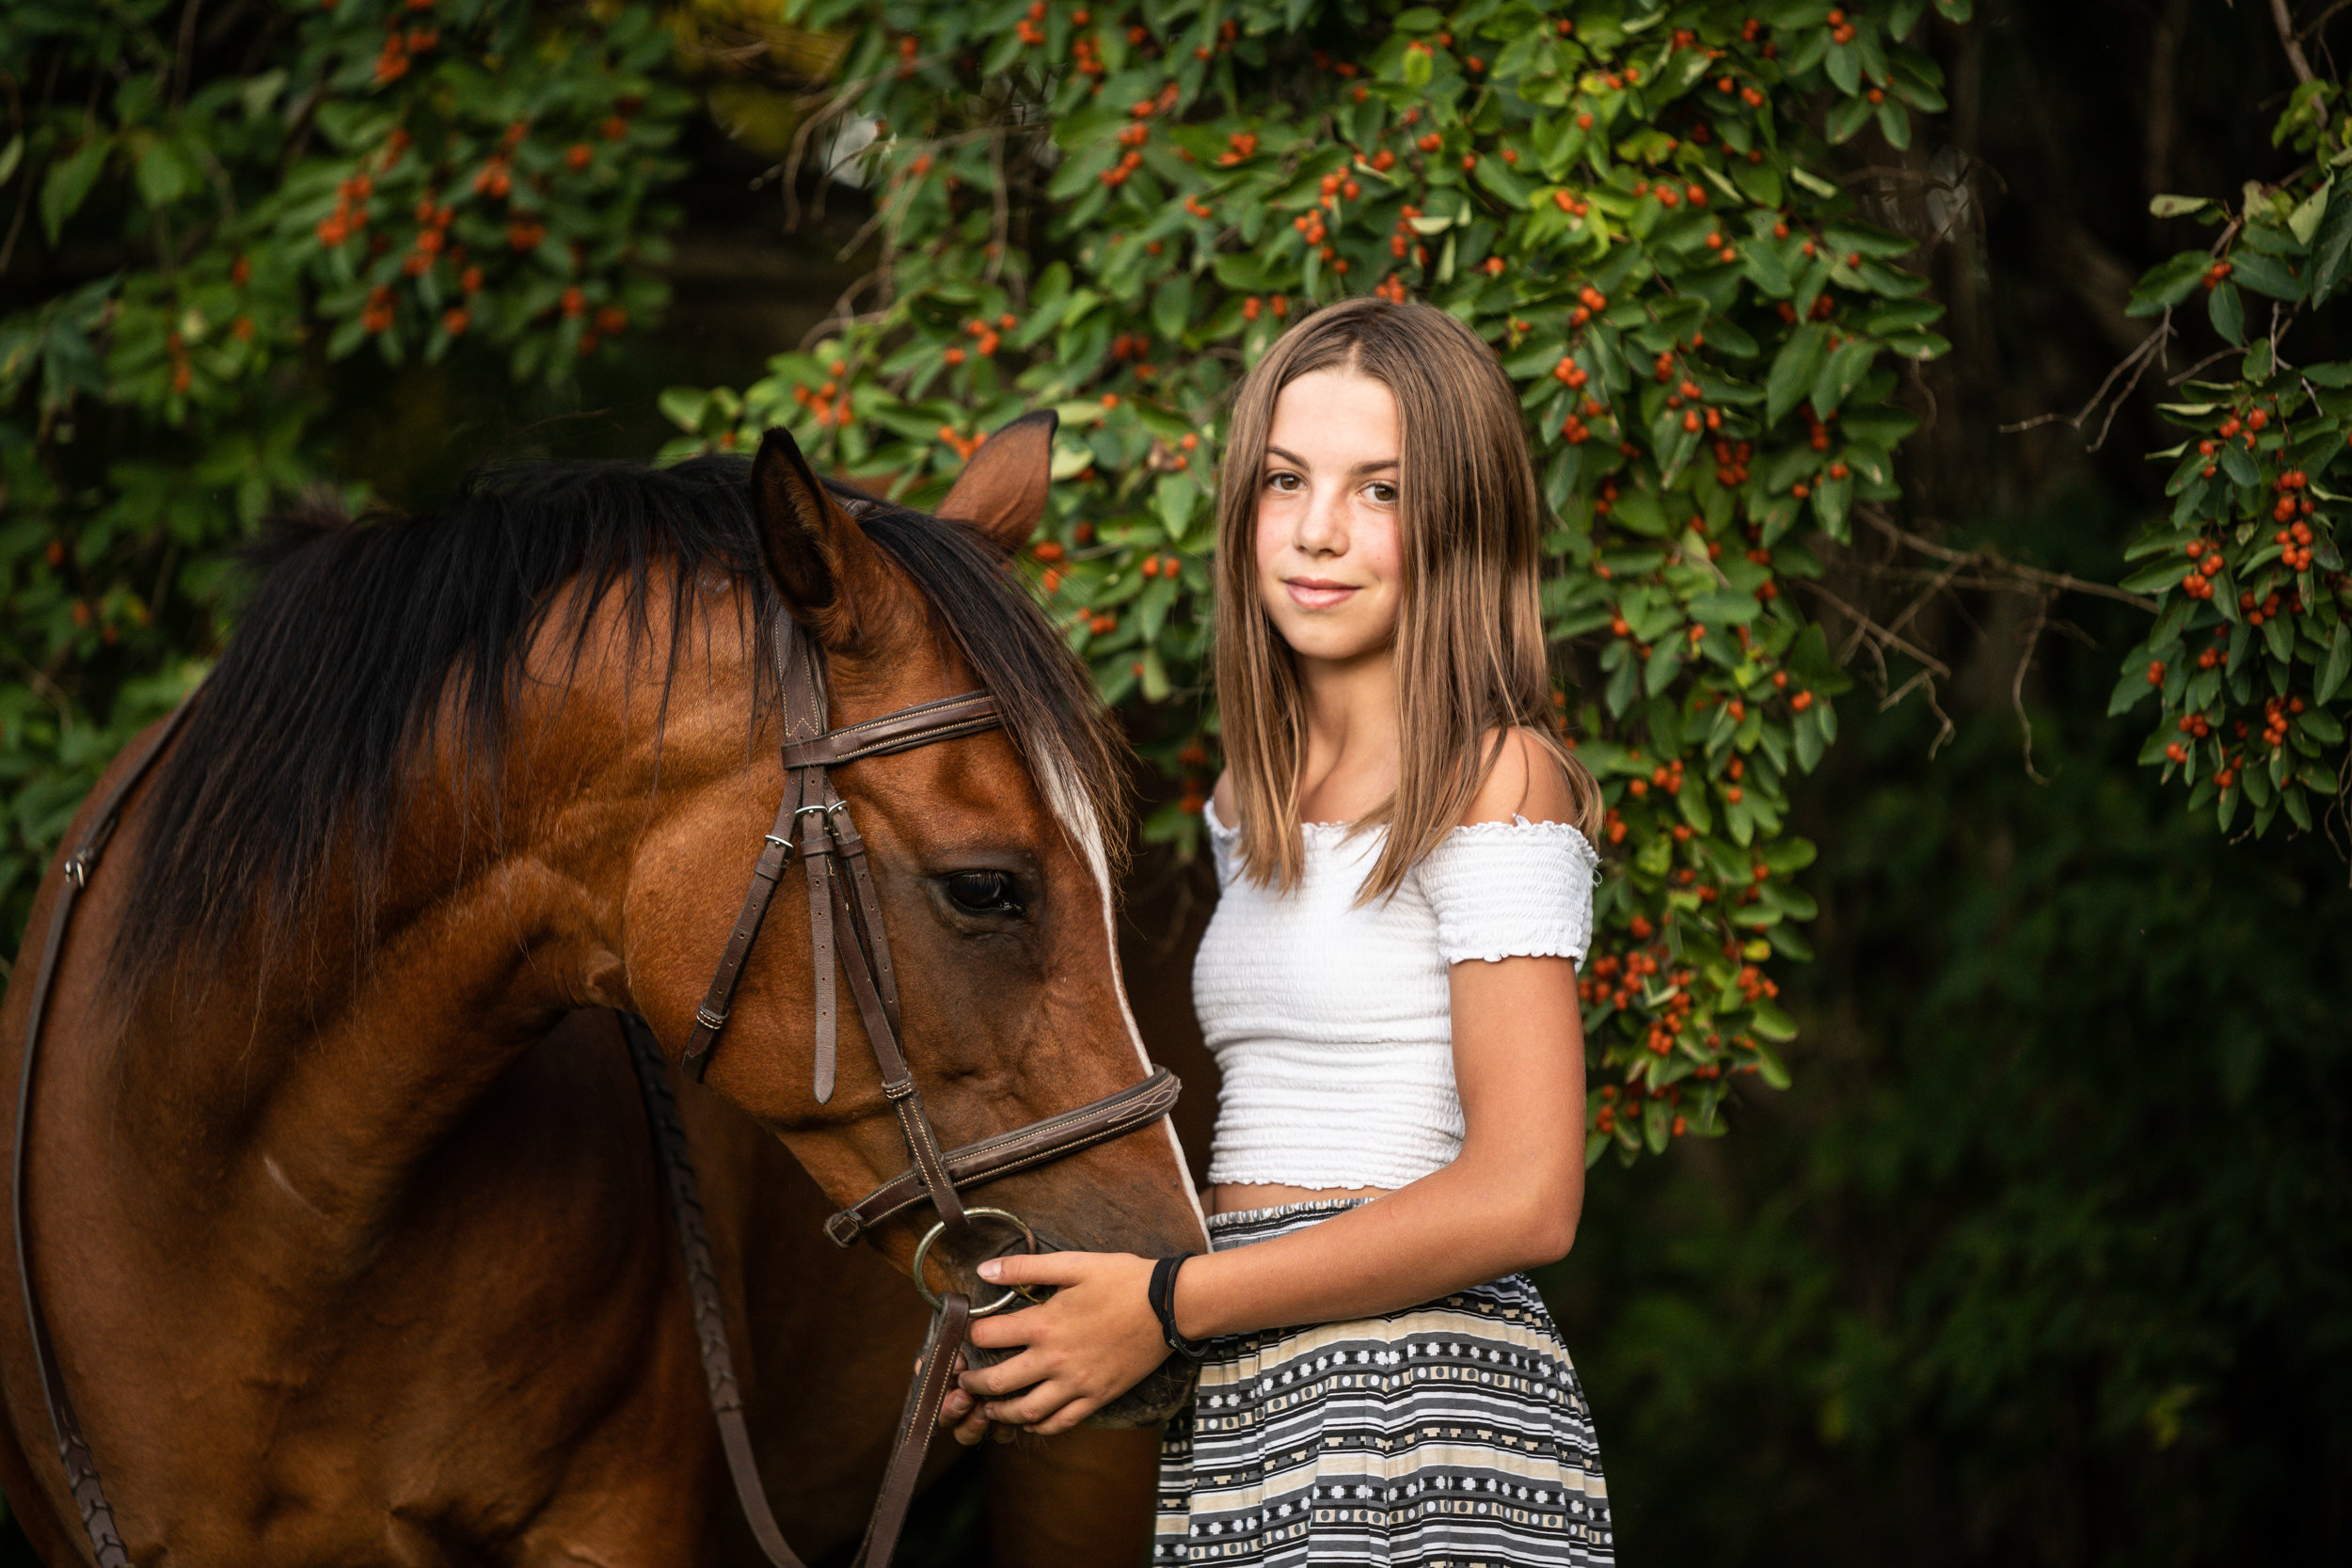 sweet portrait of horse and girl